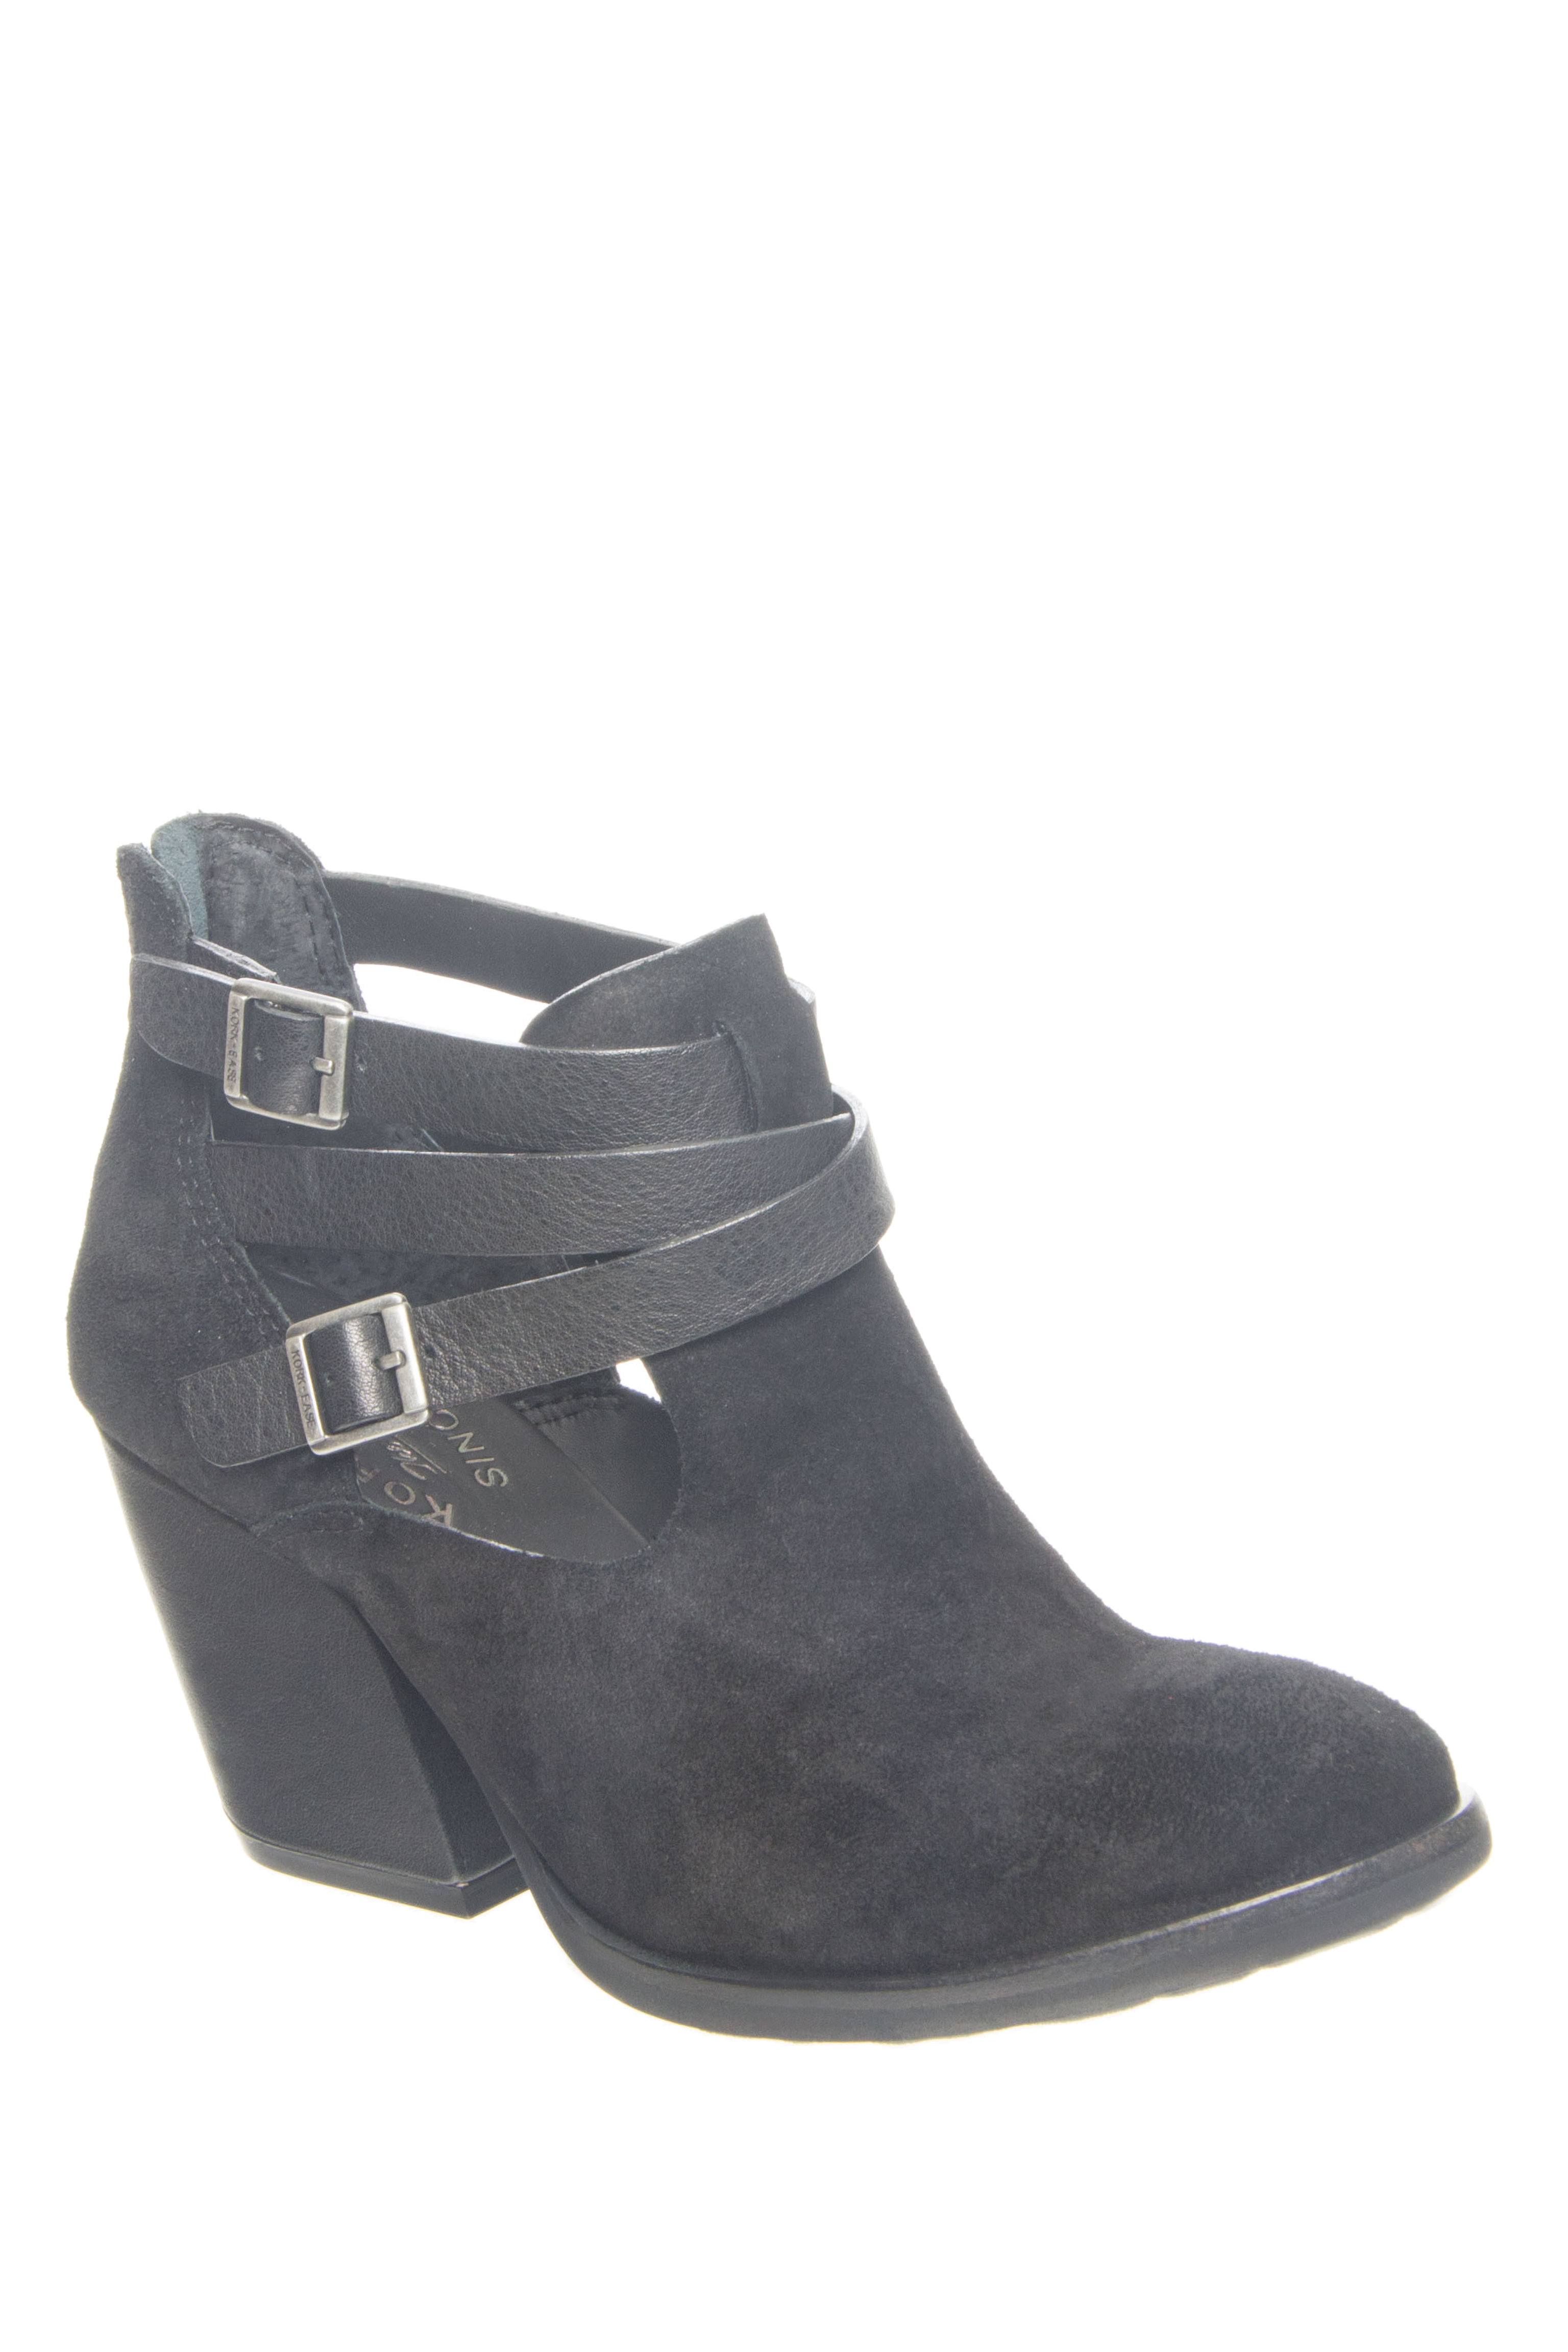 Kork-Ease Stina High Heel Booties - Black / Black / Black Combo